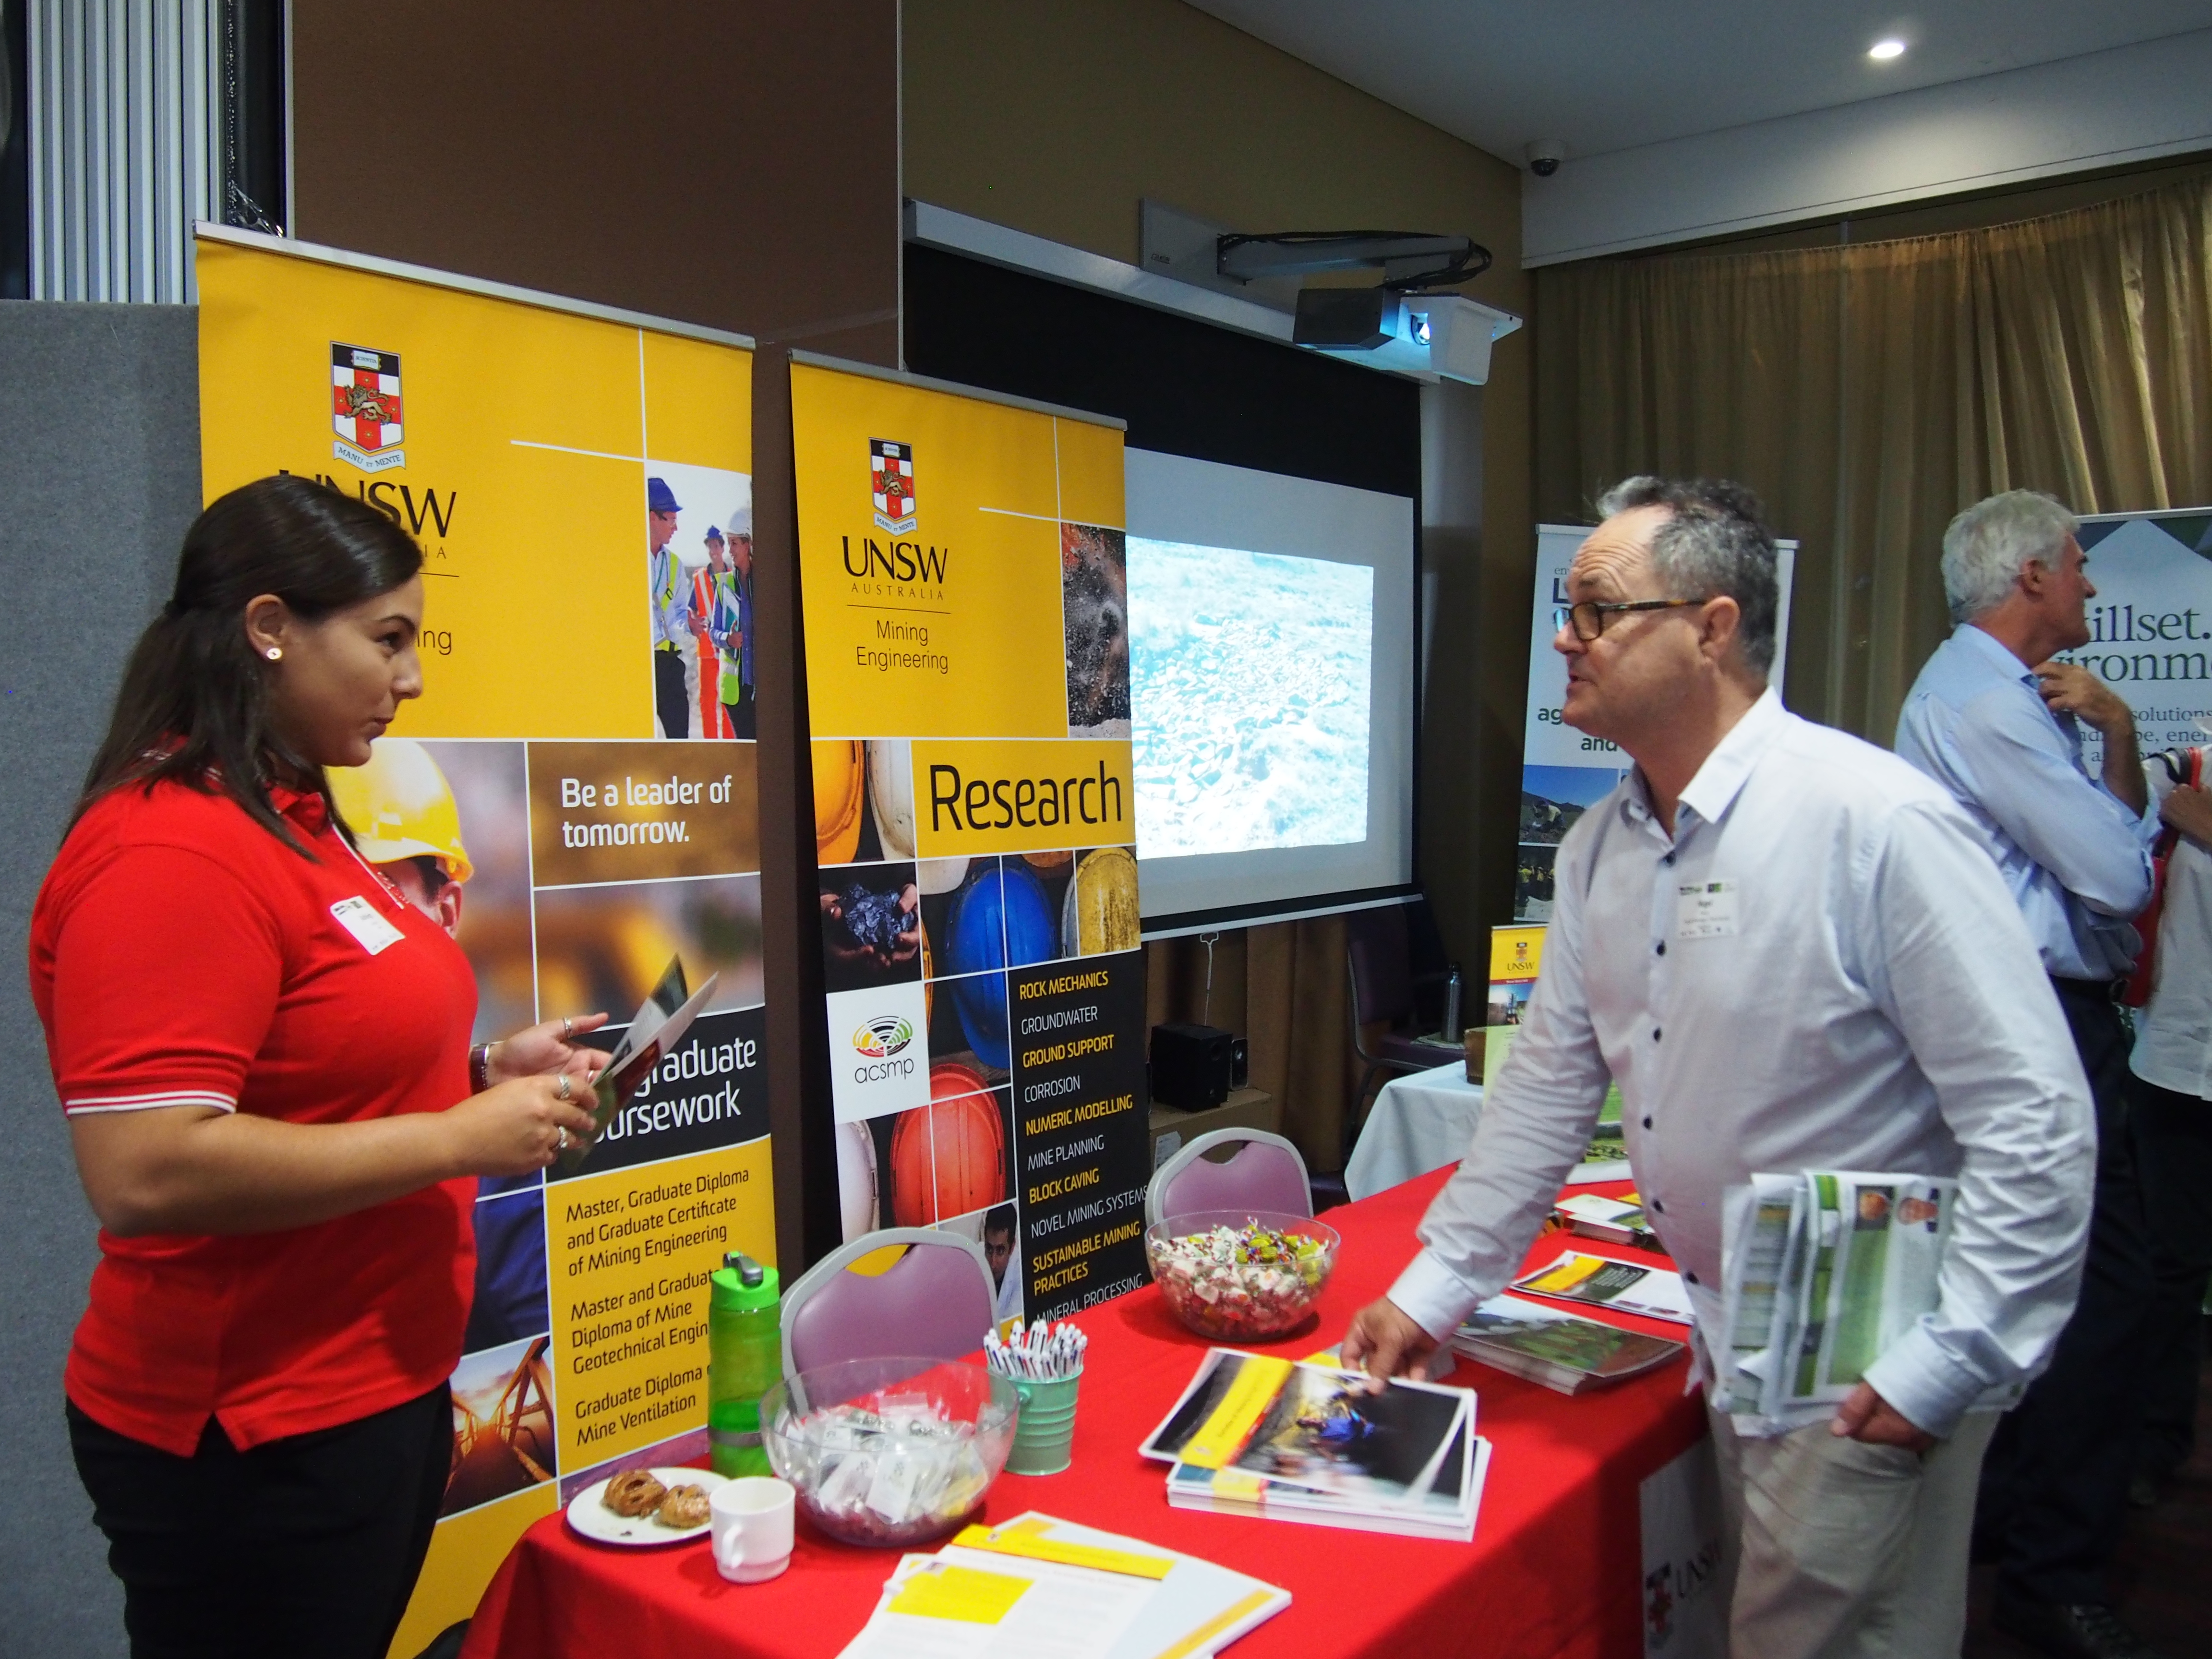 Session sponsor UNSW, also utilised an exhibition space